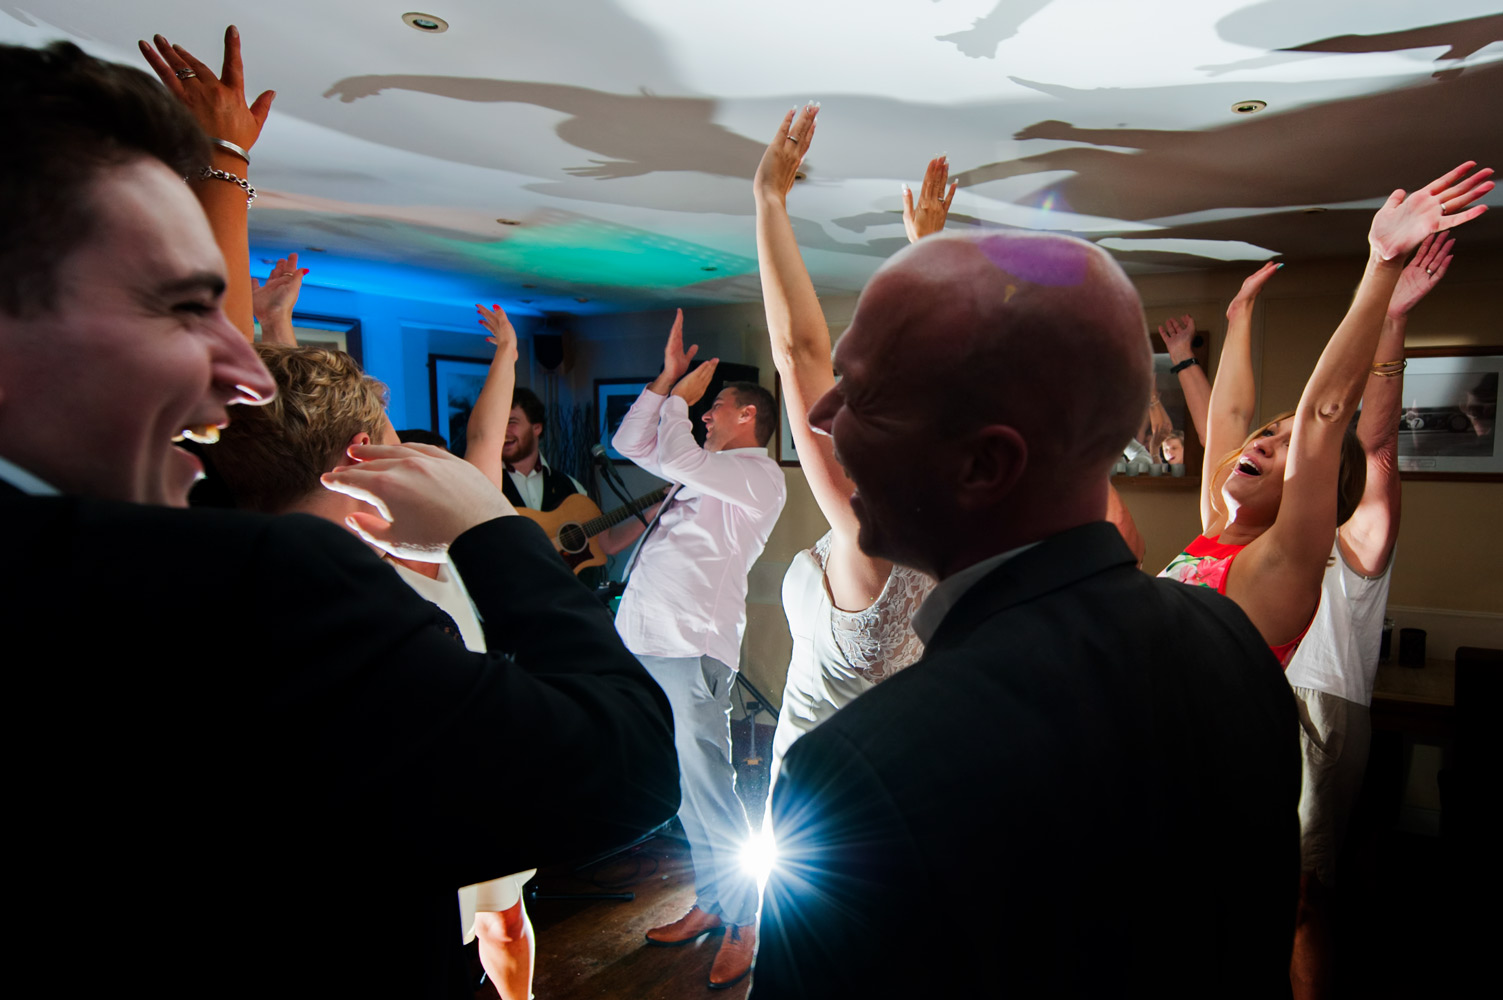 Wedding reception at The Earl of March pub in Sussex